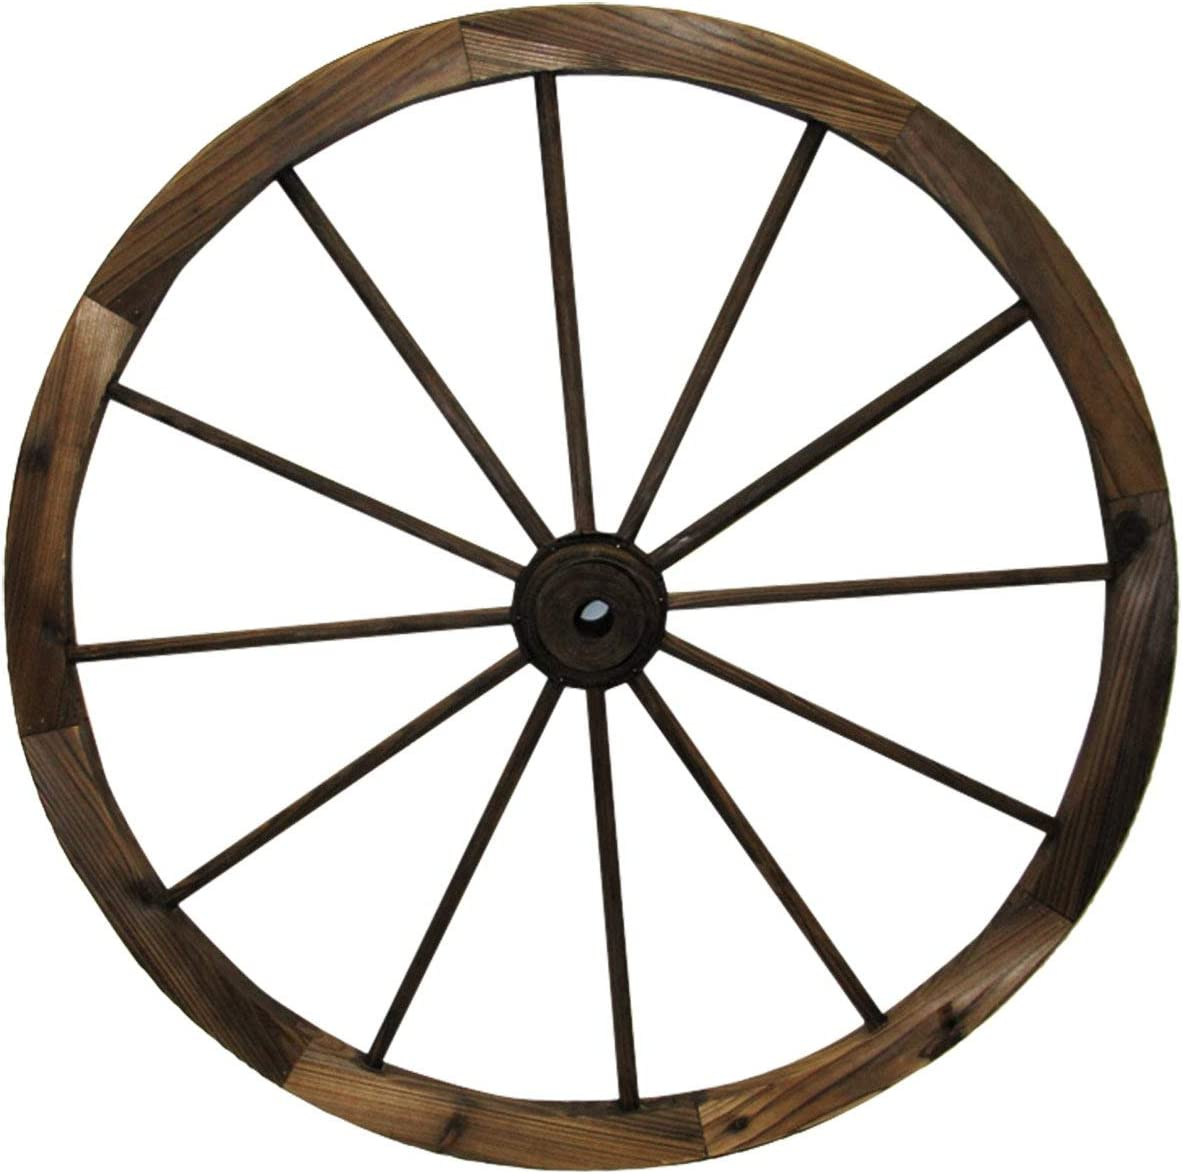 "Leigh Country TX 93953 36"" Wagon Wheel, 36 Inches, Walnut Finish"